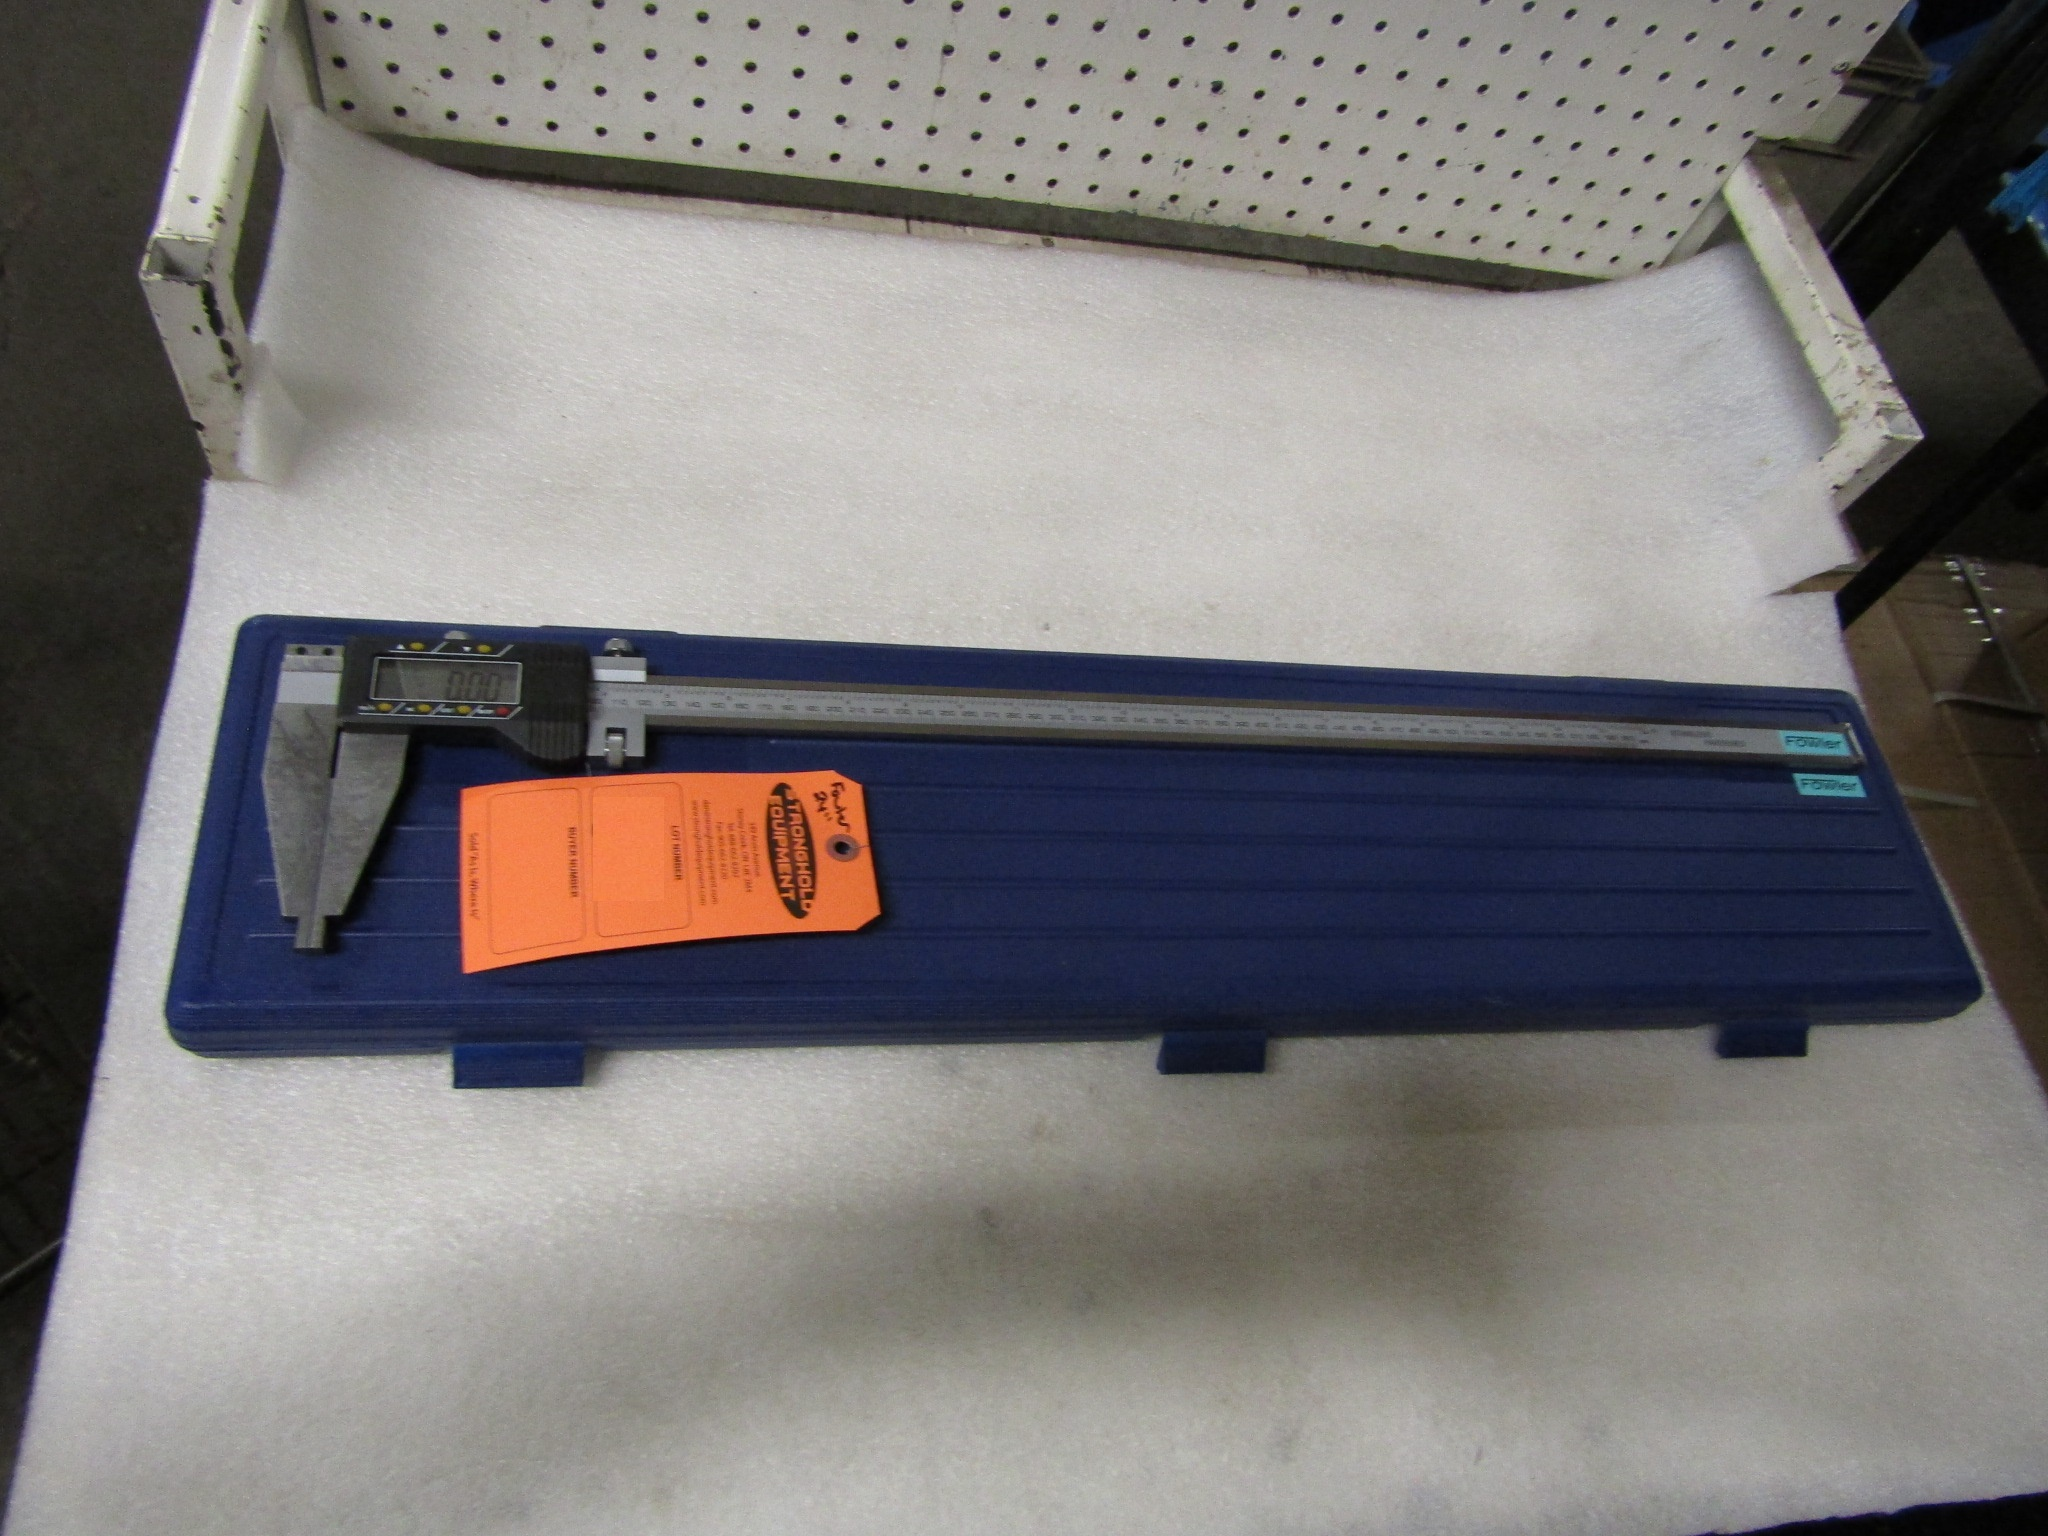 "Lot 57 - BRAND NEW Fowler 24"" / 600mm Digital Caliper - large digital readout display in case - MINT"